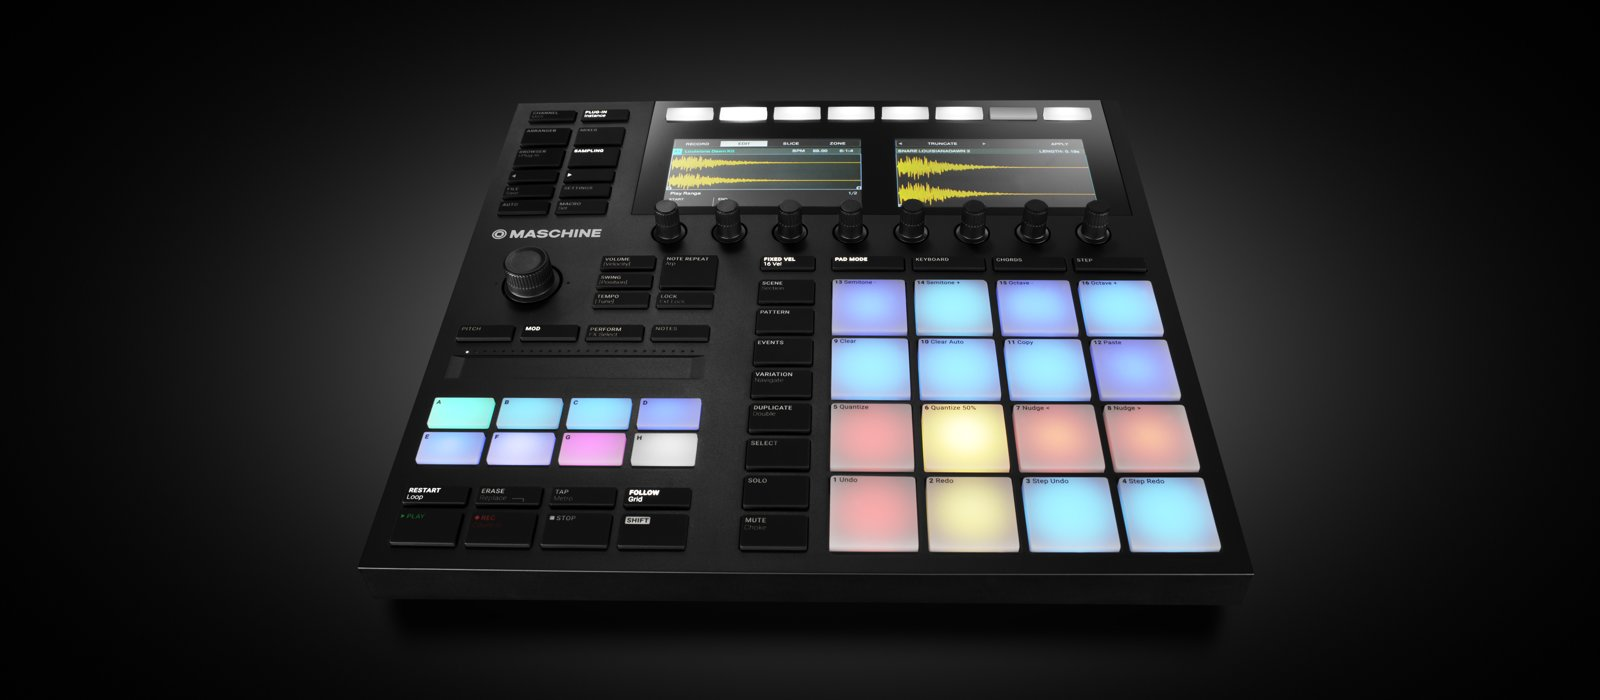 ableton live 9 maschine template